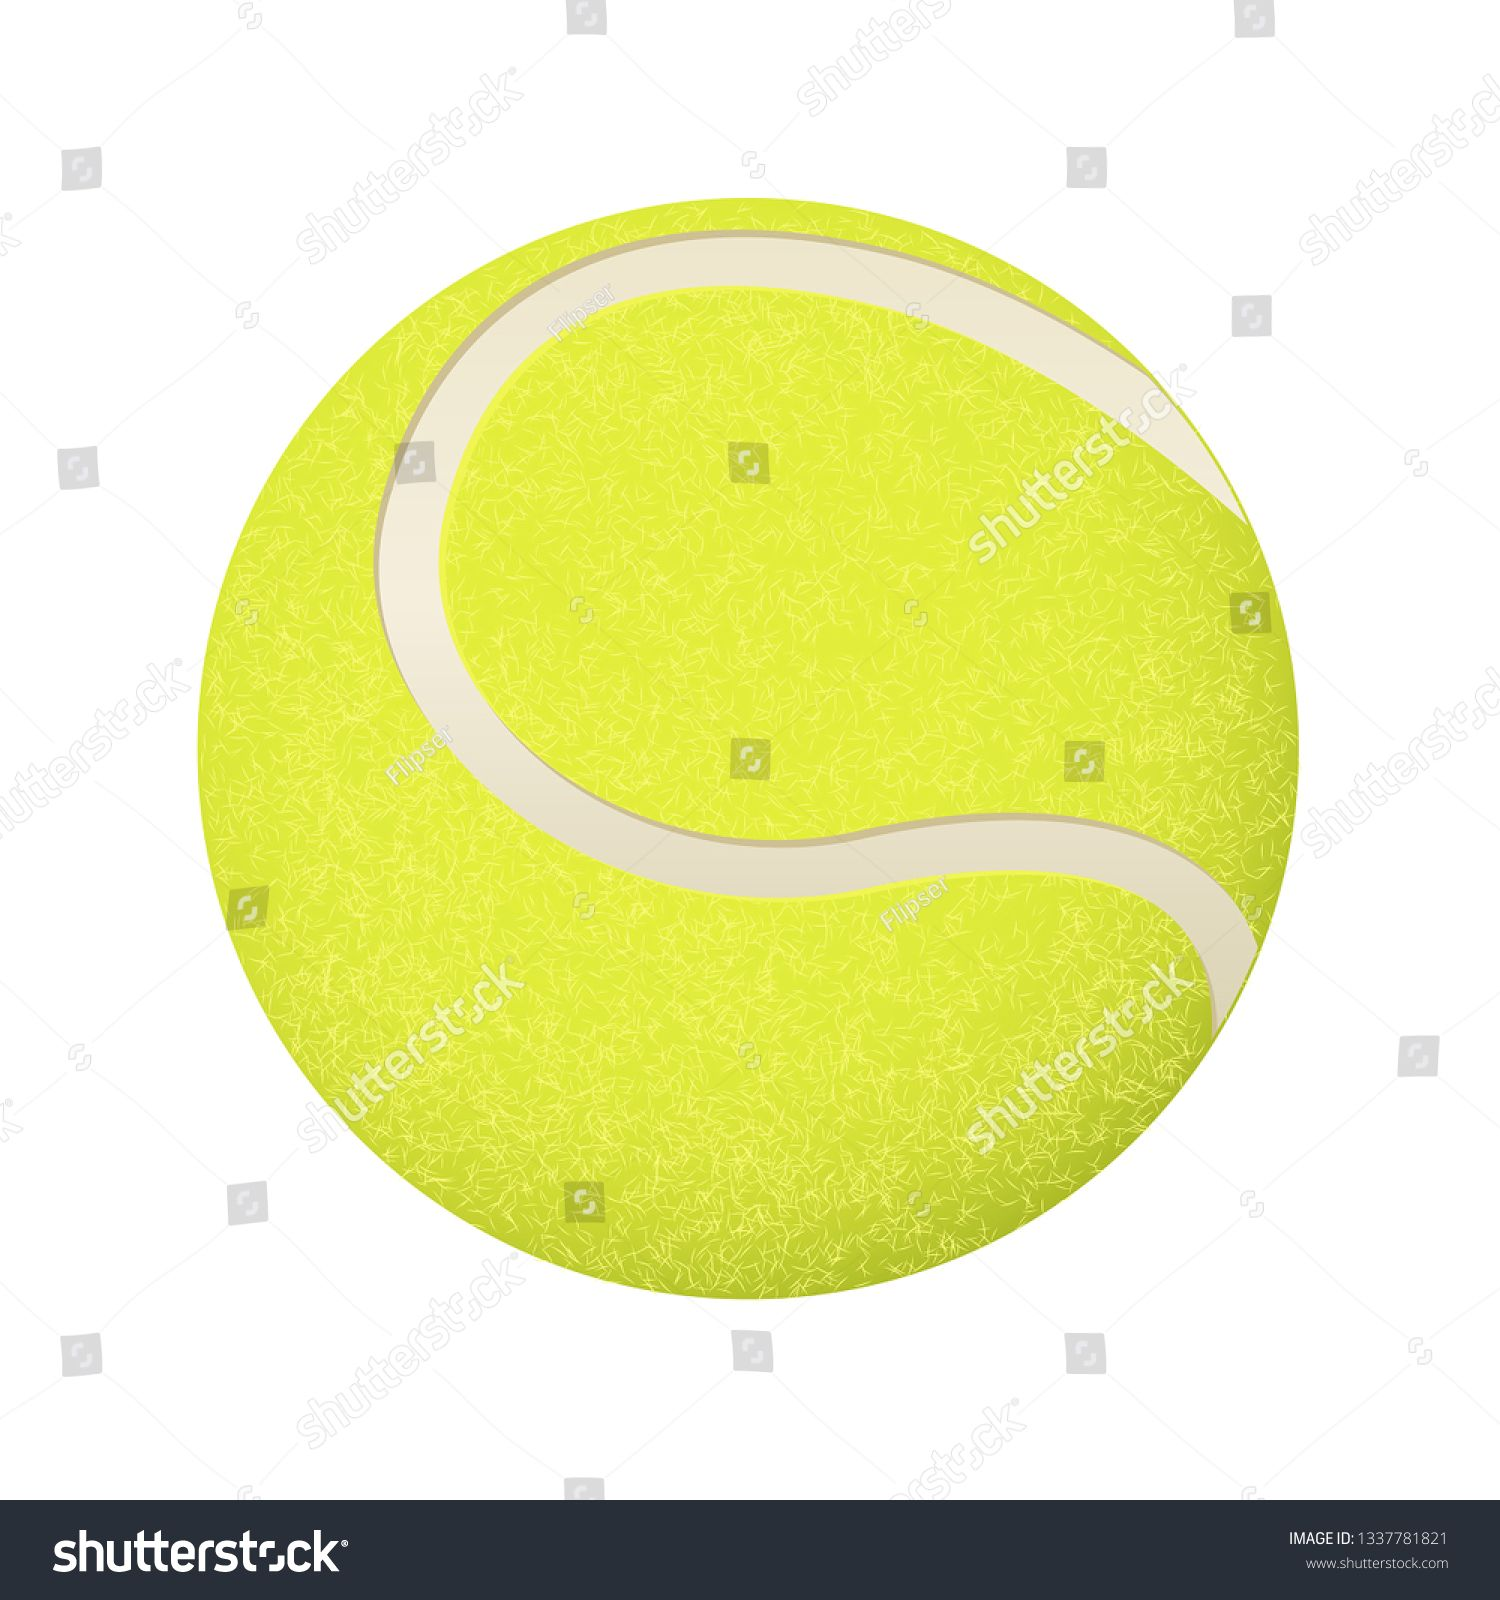 Yellow Tennis Ball Vector 3d Illustration Isolated On White Background Ad Ad Ball Vector Yellow Tennis 3d Illustration Illustration Abstract Design